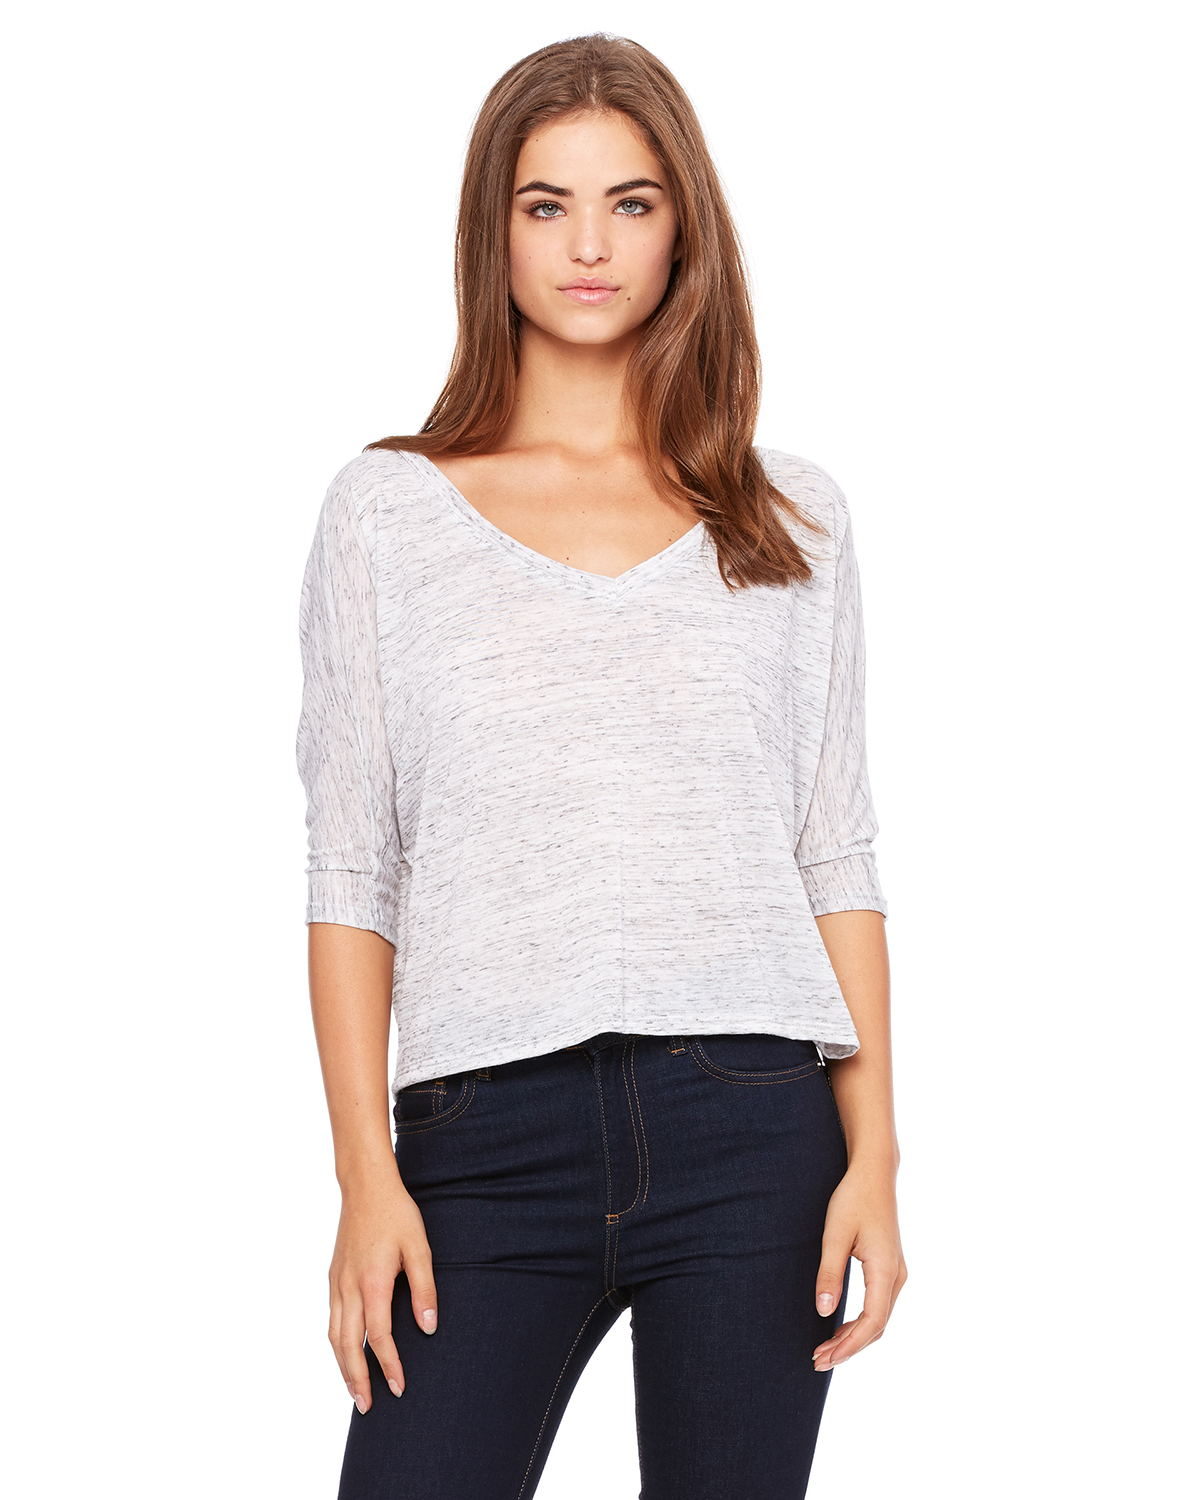 Bella 8825 Ladies 3.7 oz. Flowy Boxy Half-Sleeve V-Neck ...